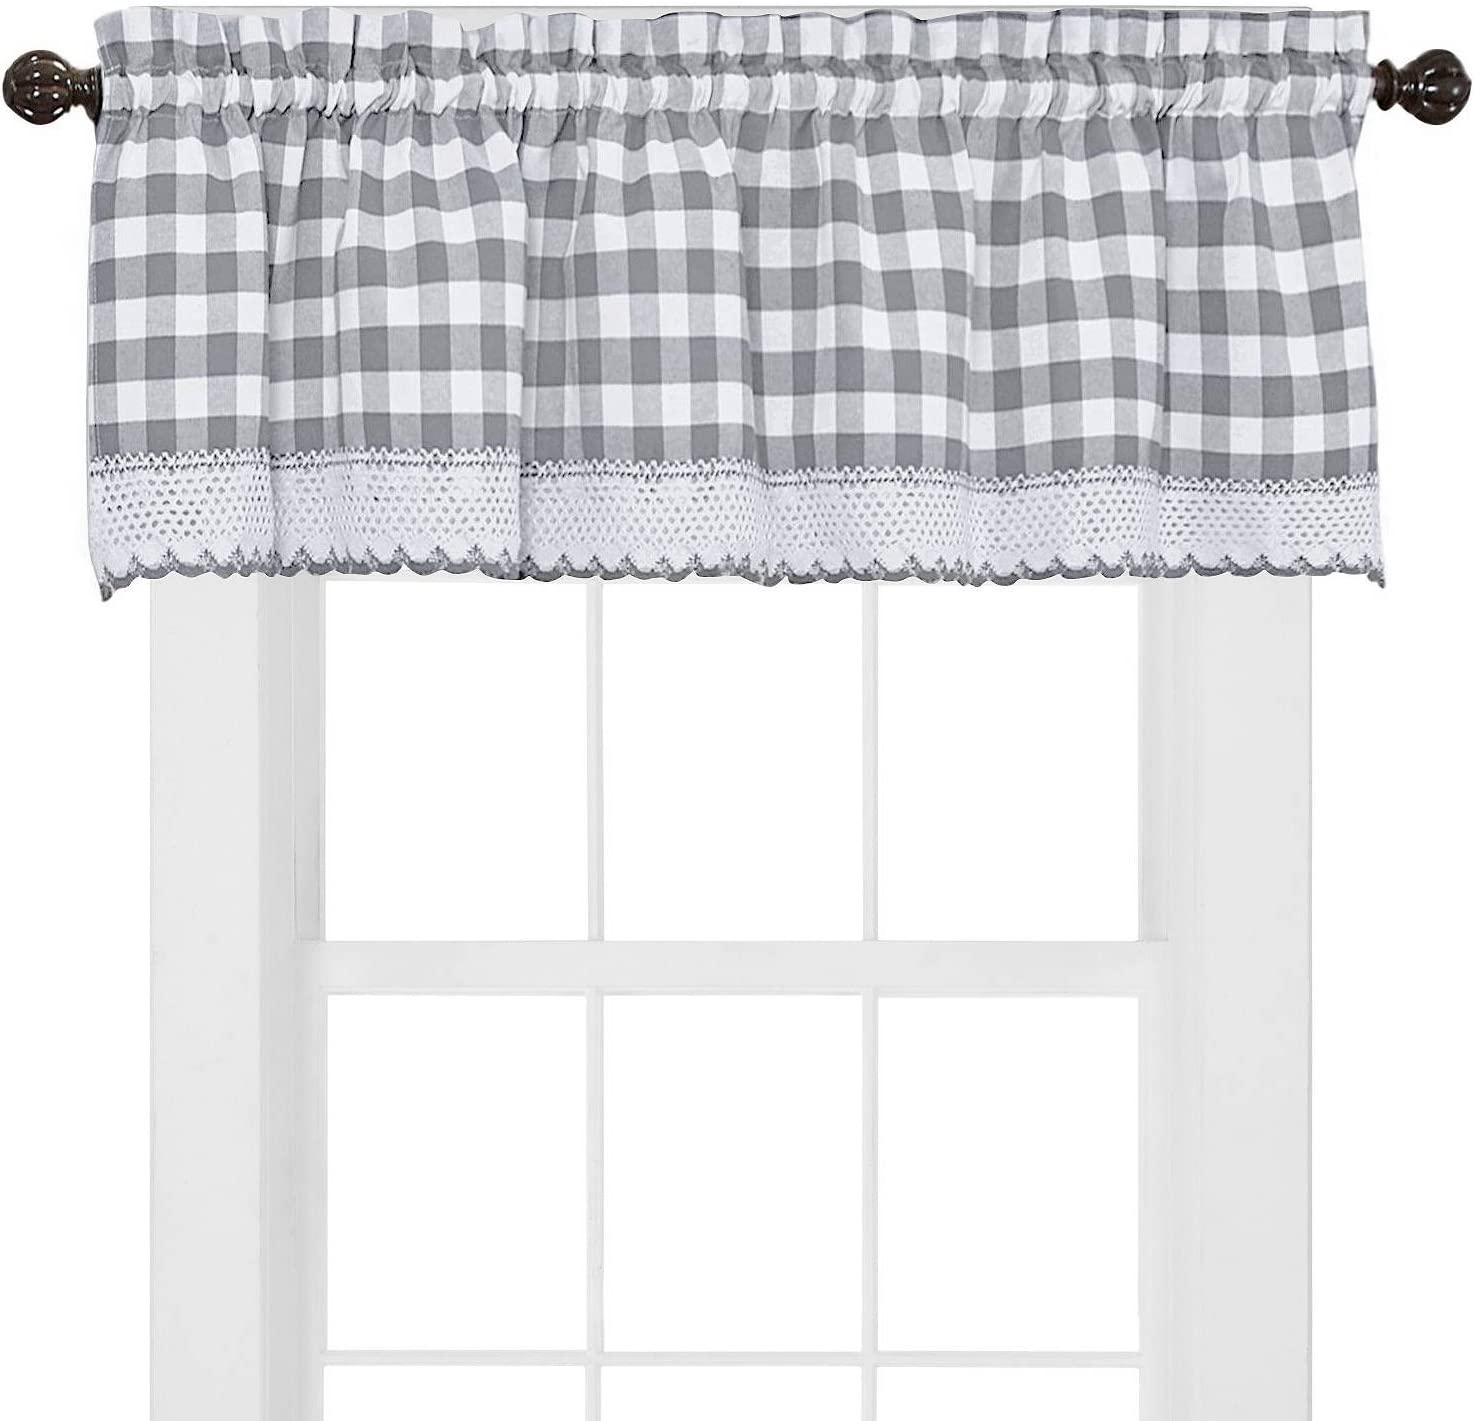 Sweet Home Collection Kitchen Window Curtain Panel Treatment Decorative Buffalo Check Design, Valance, Gray